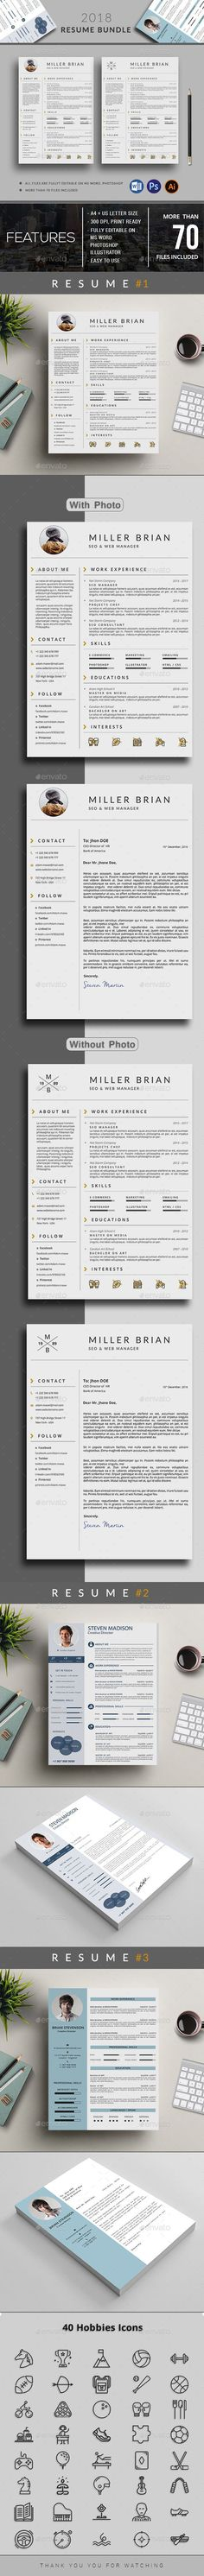 Pin by FDesign Nerd on CV Resume Template Guaranteed to Get You